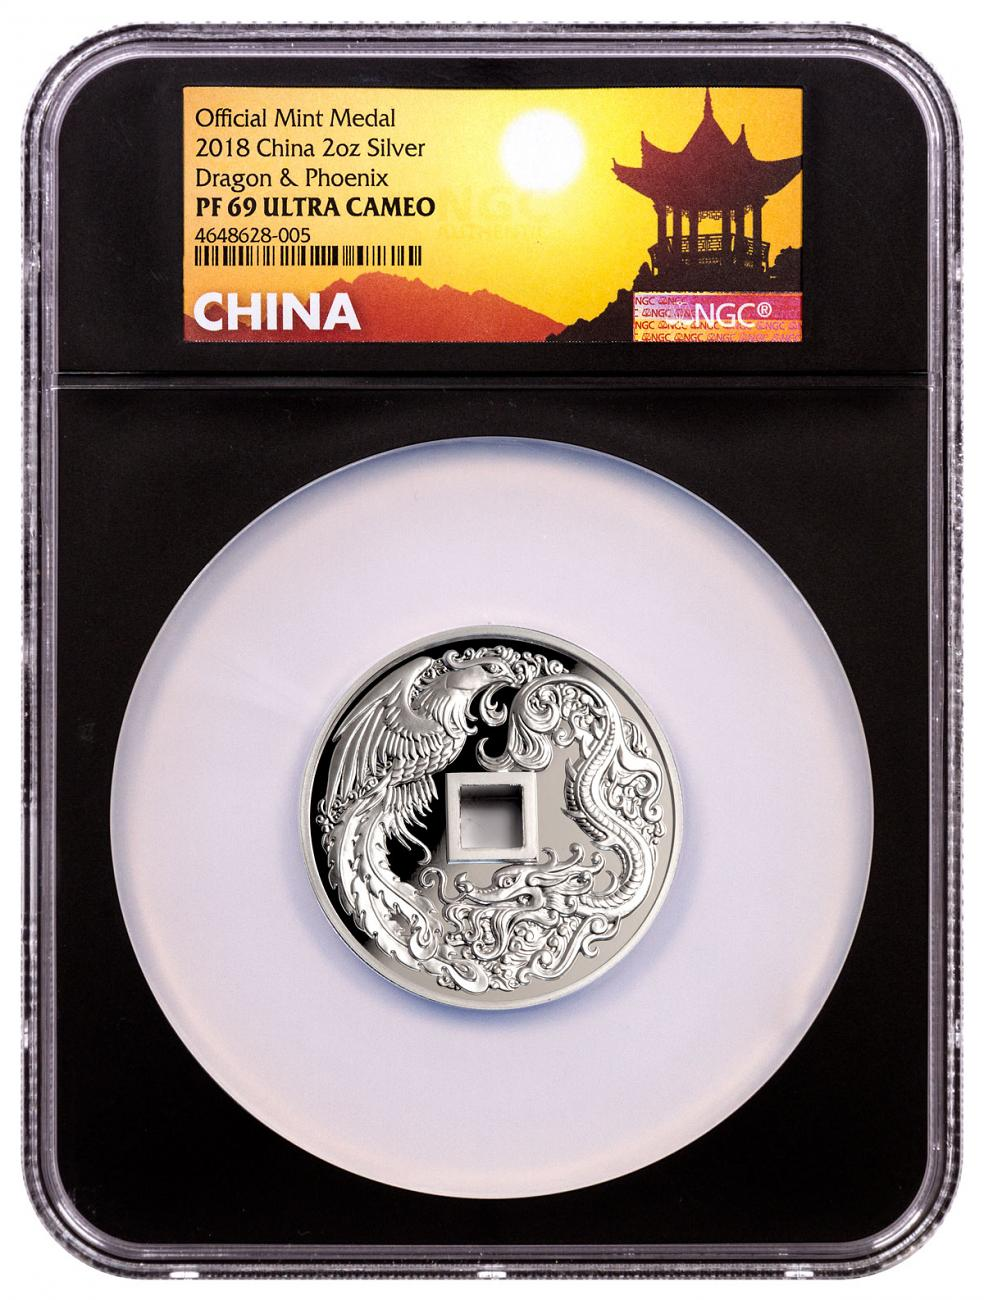 2018 China Dragon & Phoenix 2 oz Silver Proof Medal NGC PF69 UC Black Core Holder Exclusive Pagoda Label